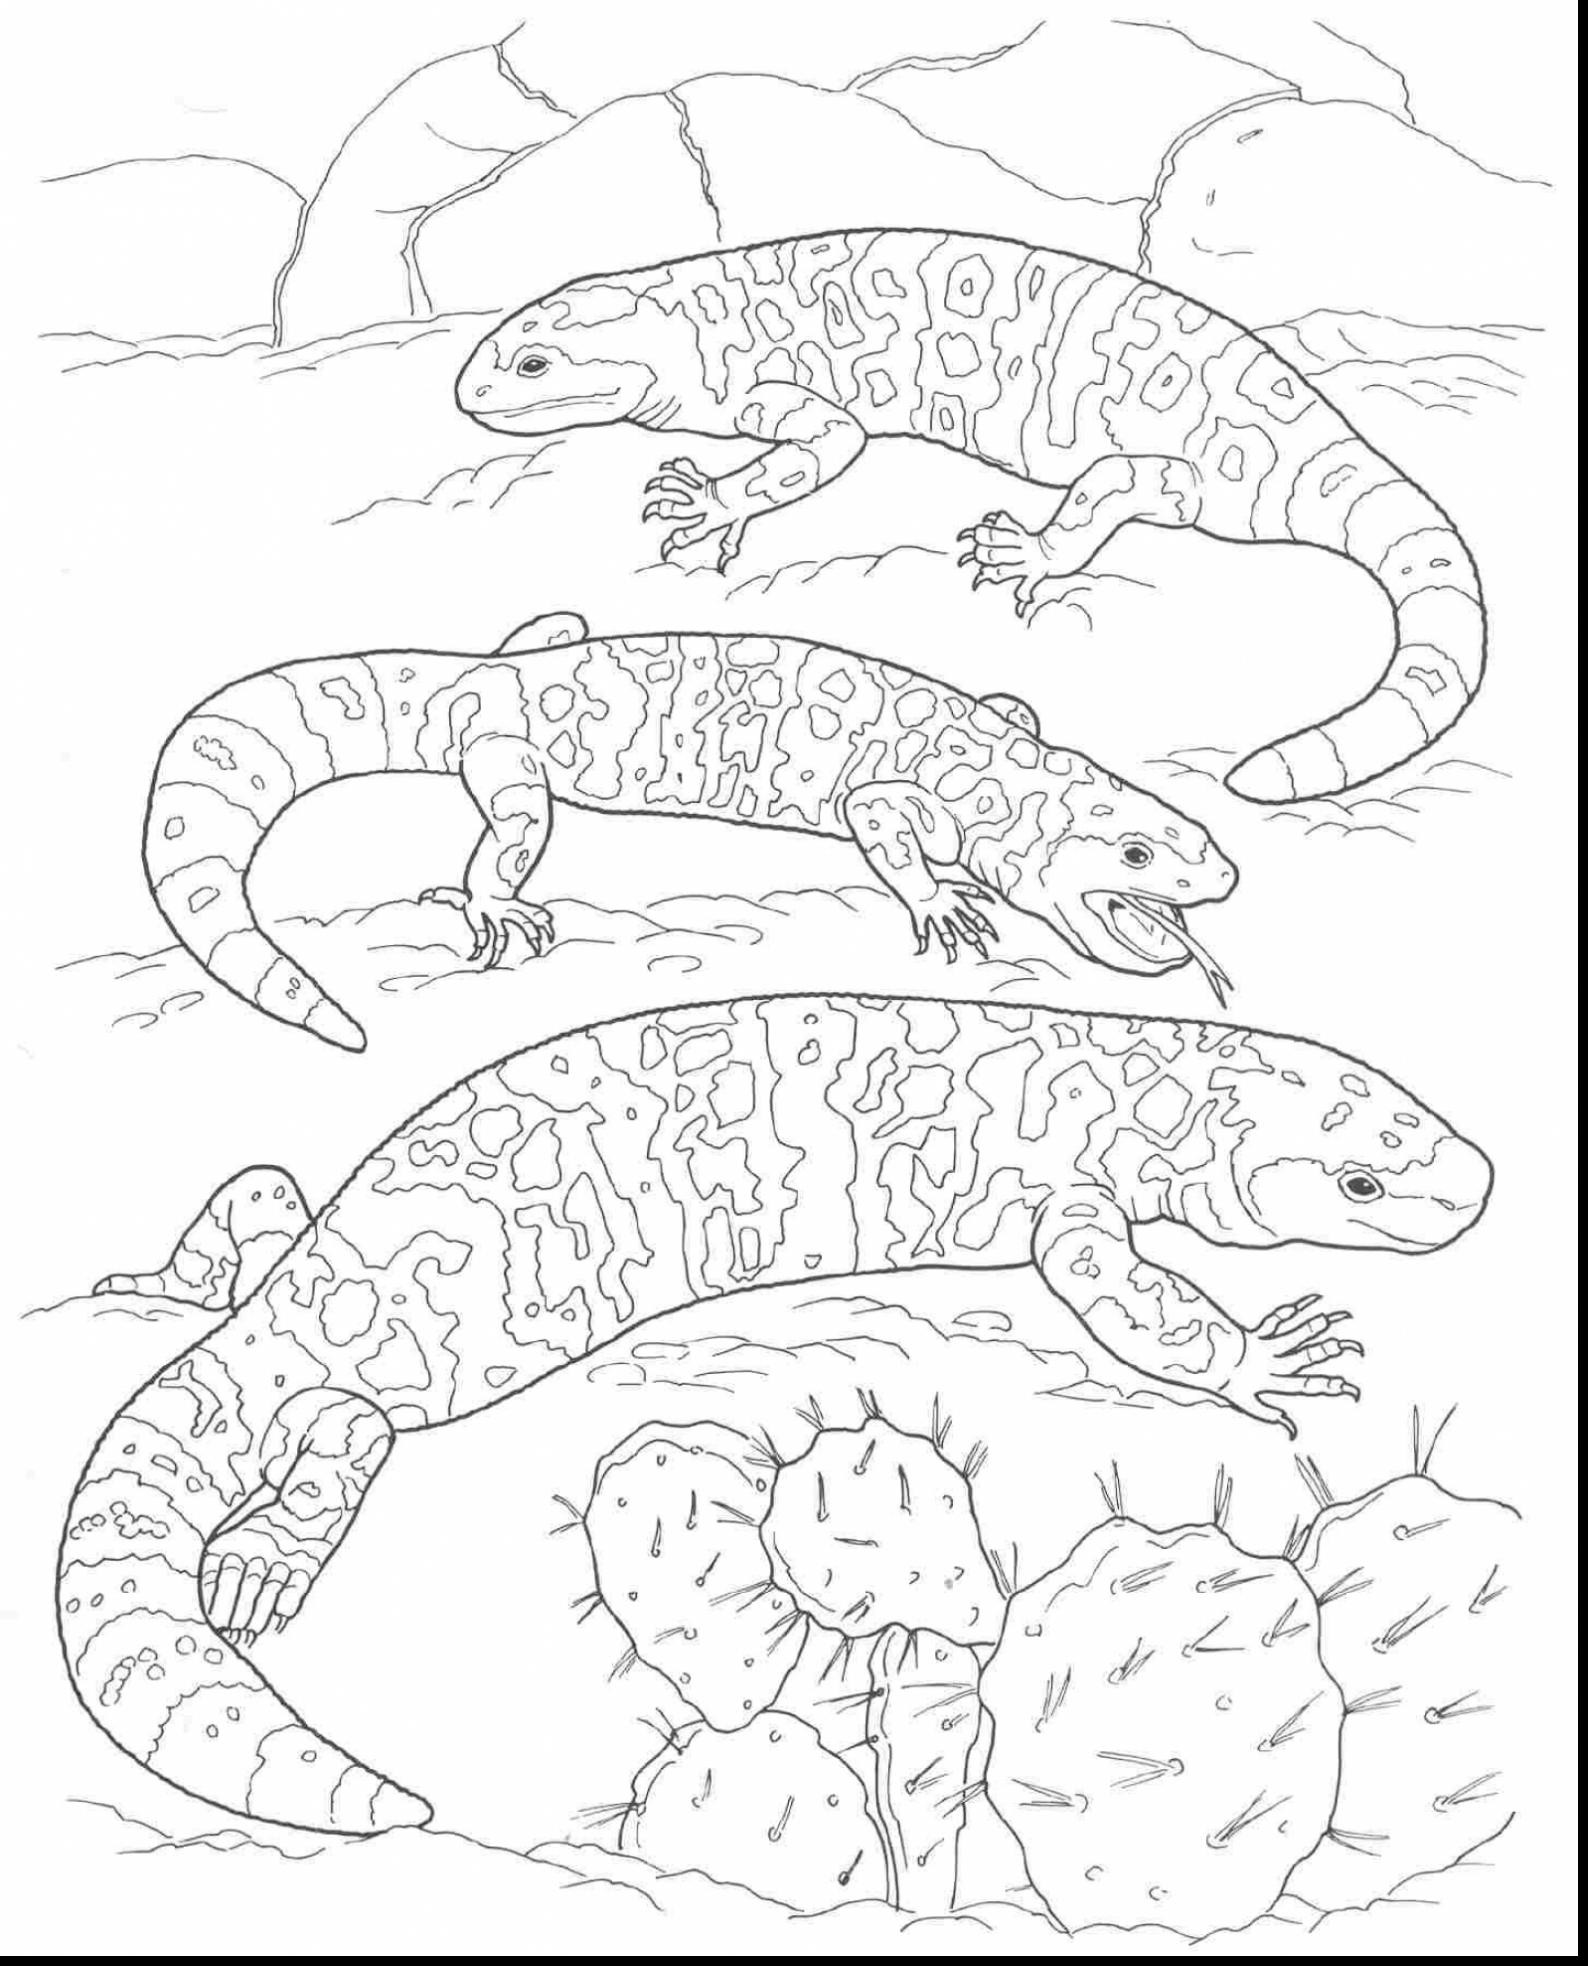 Free Coloring Pages Download : Desert Animals Drawing At Getdrawings Free  For Personal Use Of Desert